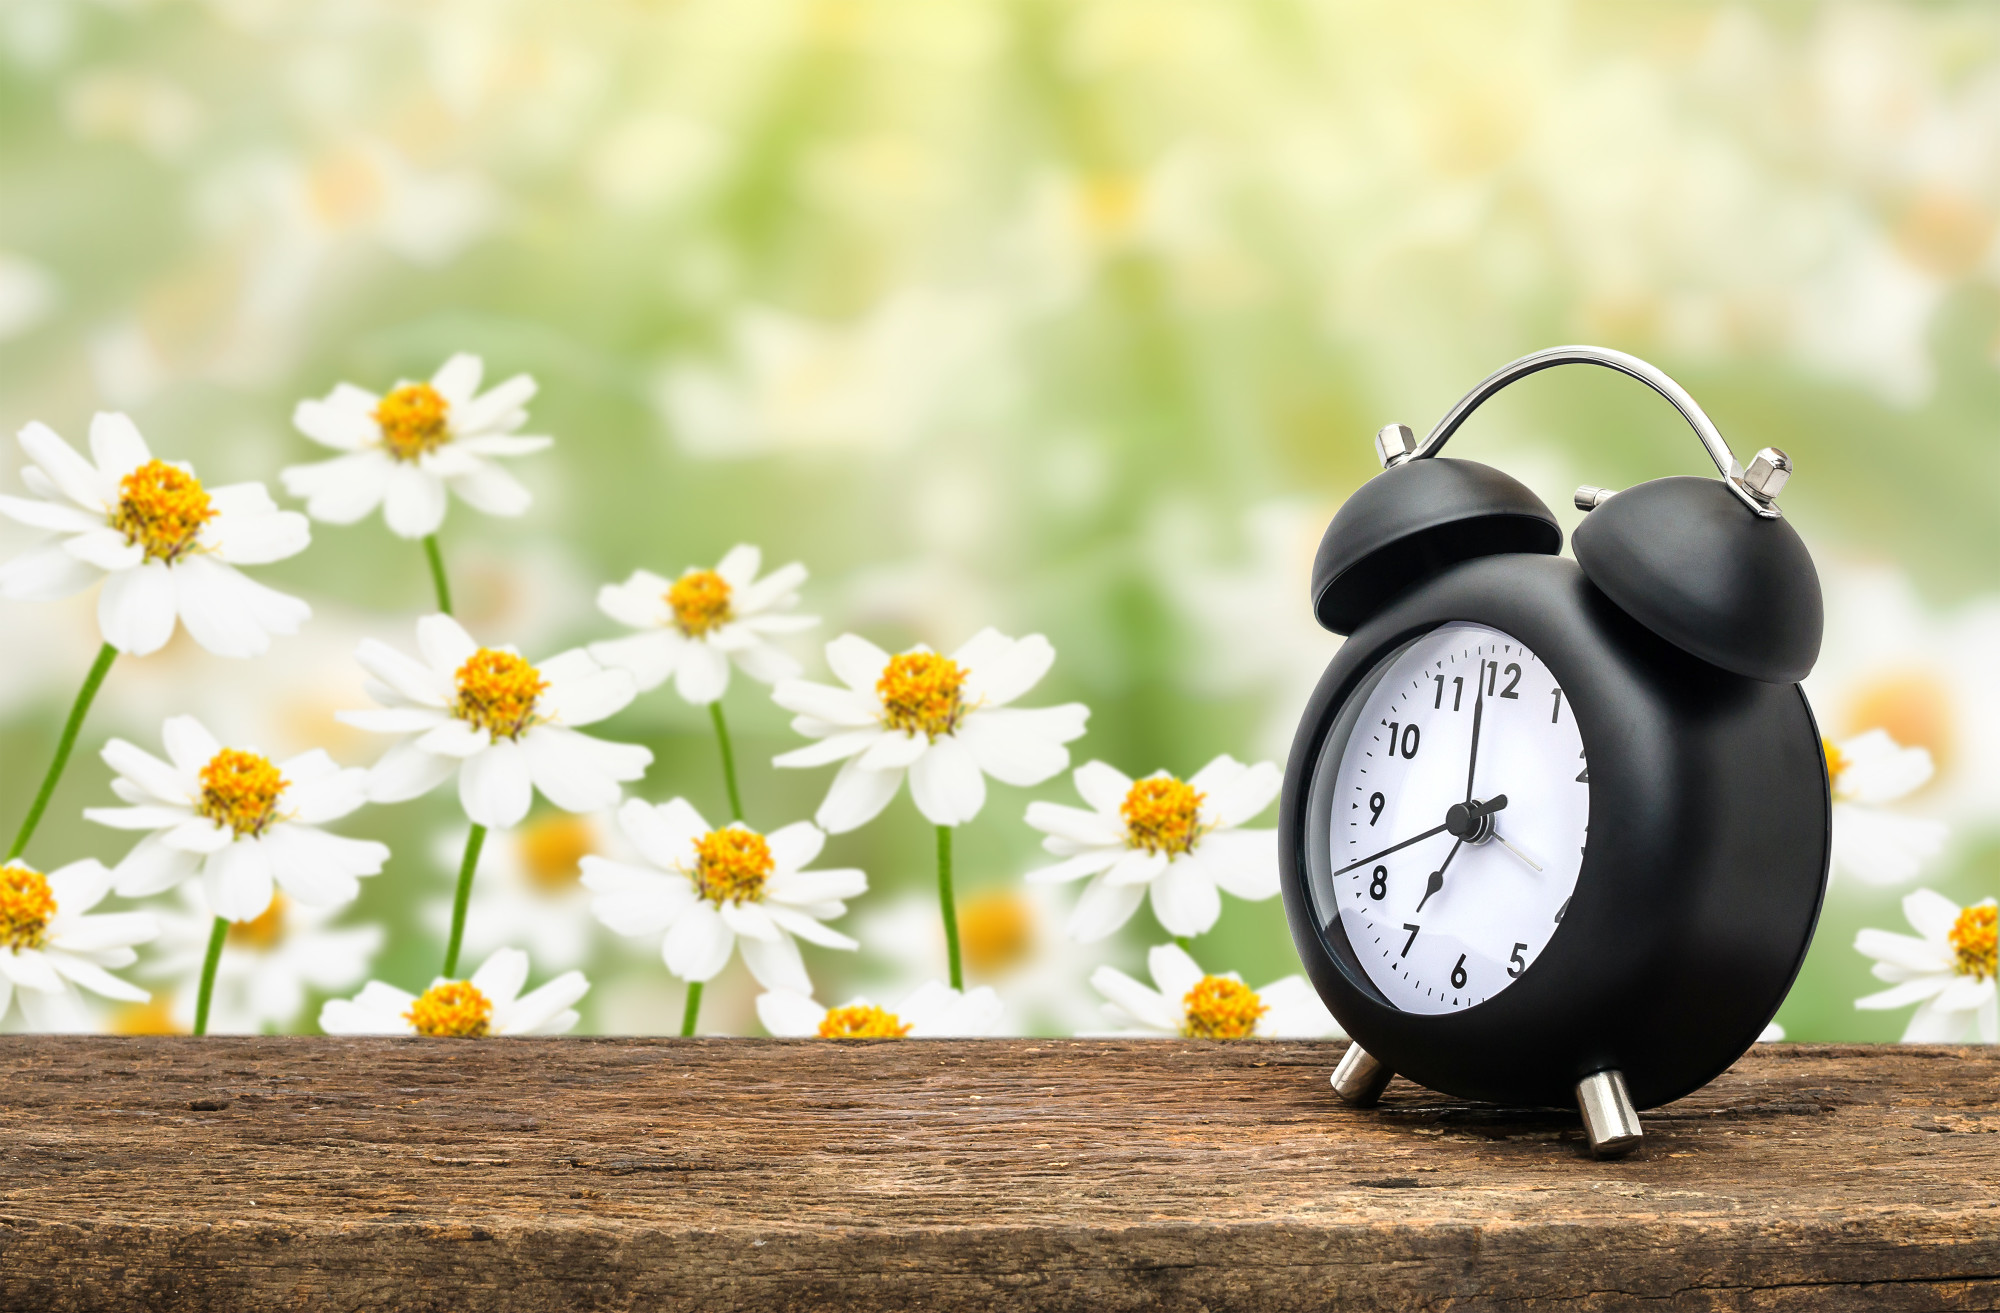 10 Interesting Daylight Saving Time Facts You May Not Know